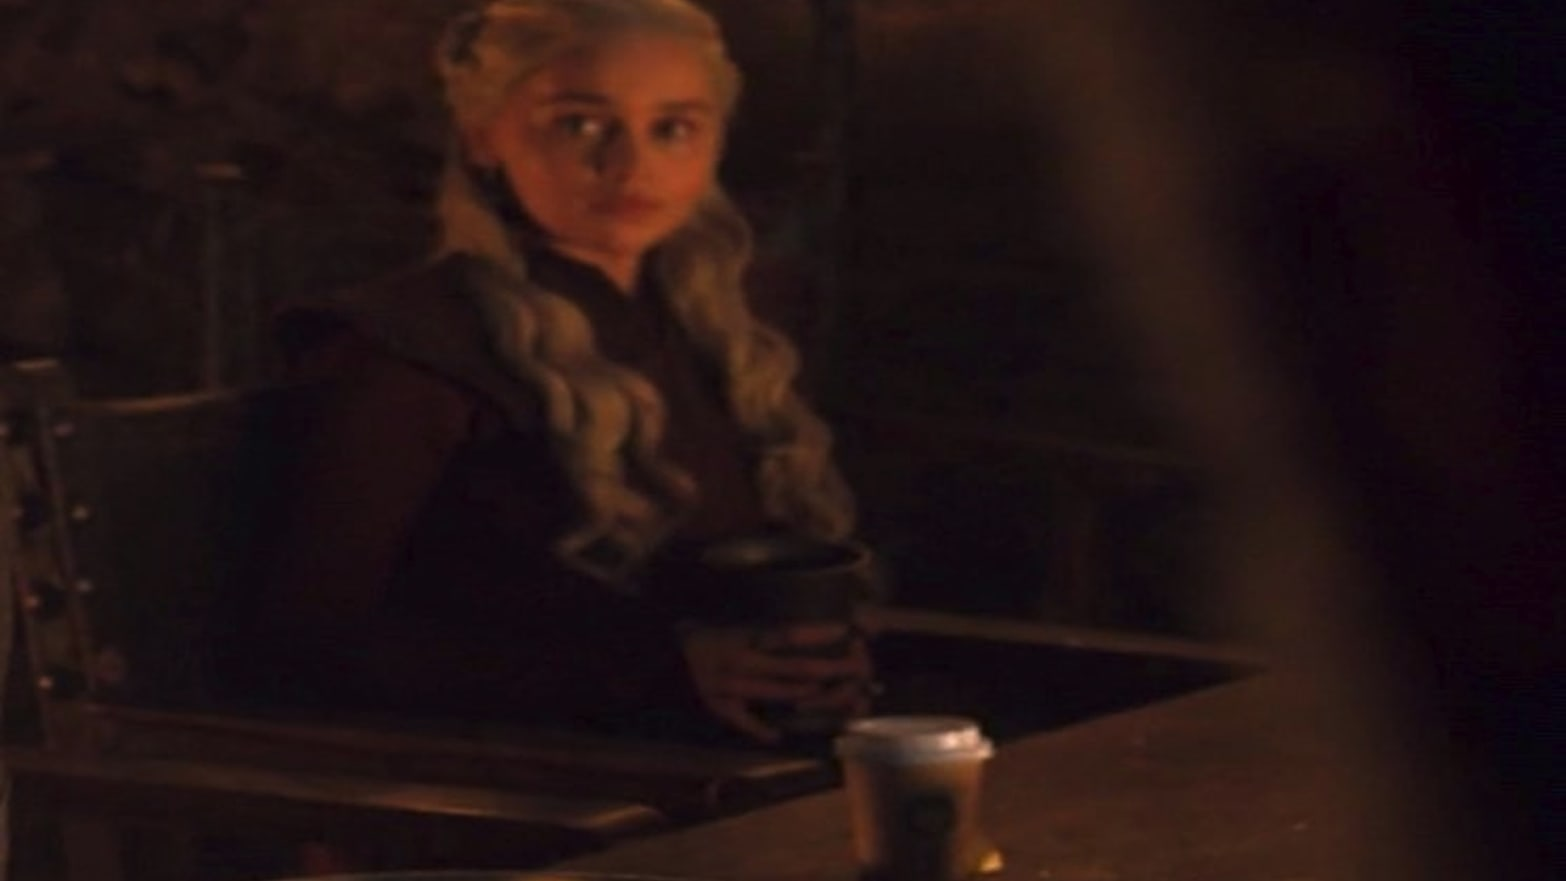 'Game of Thrones' Left a Starbucks Coffee Cup in a Scene and It's Hilarious